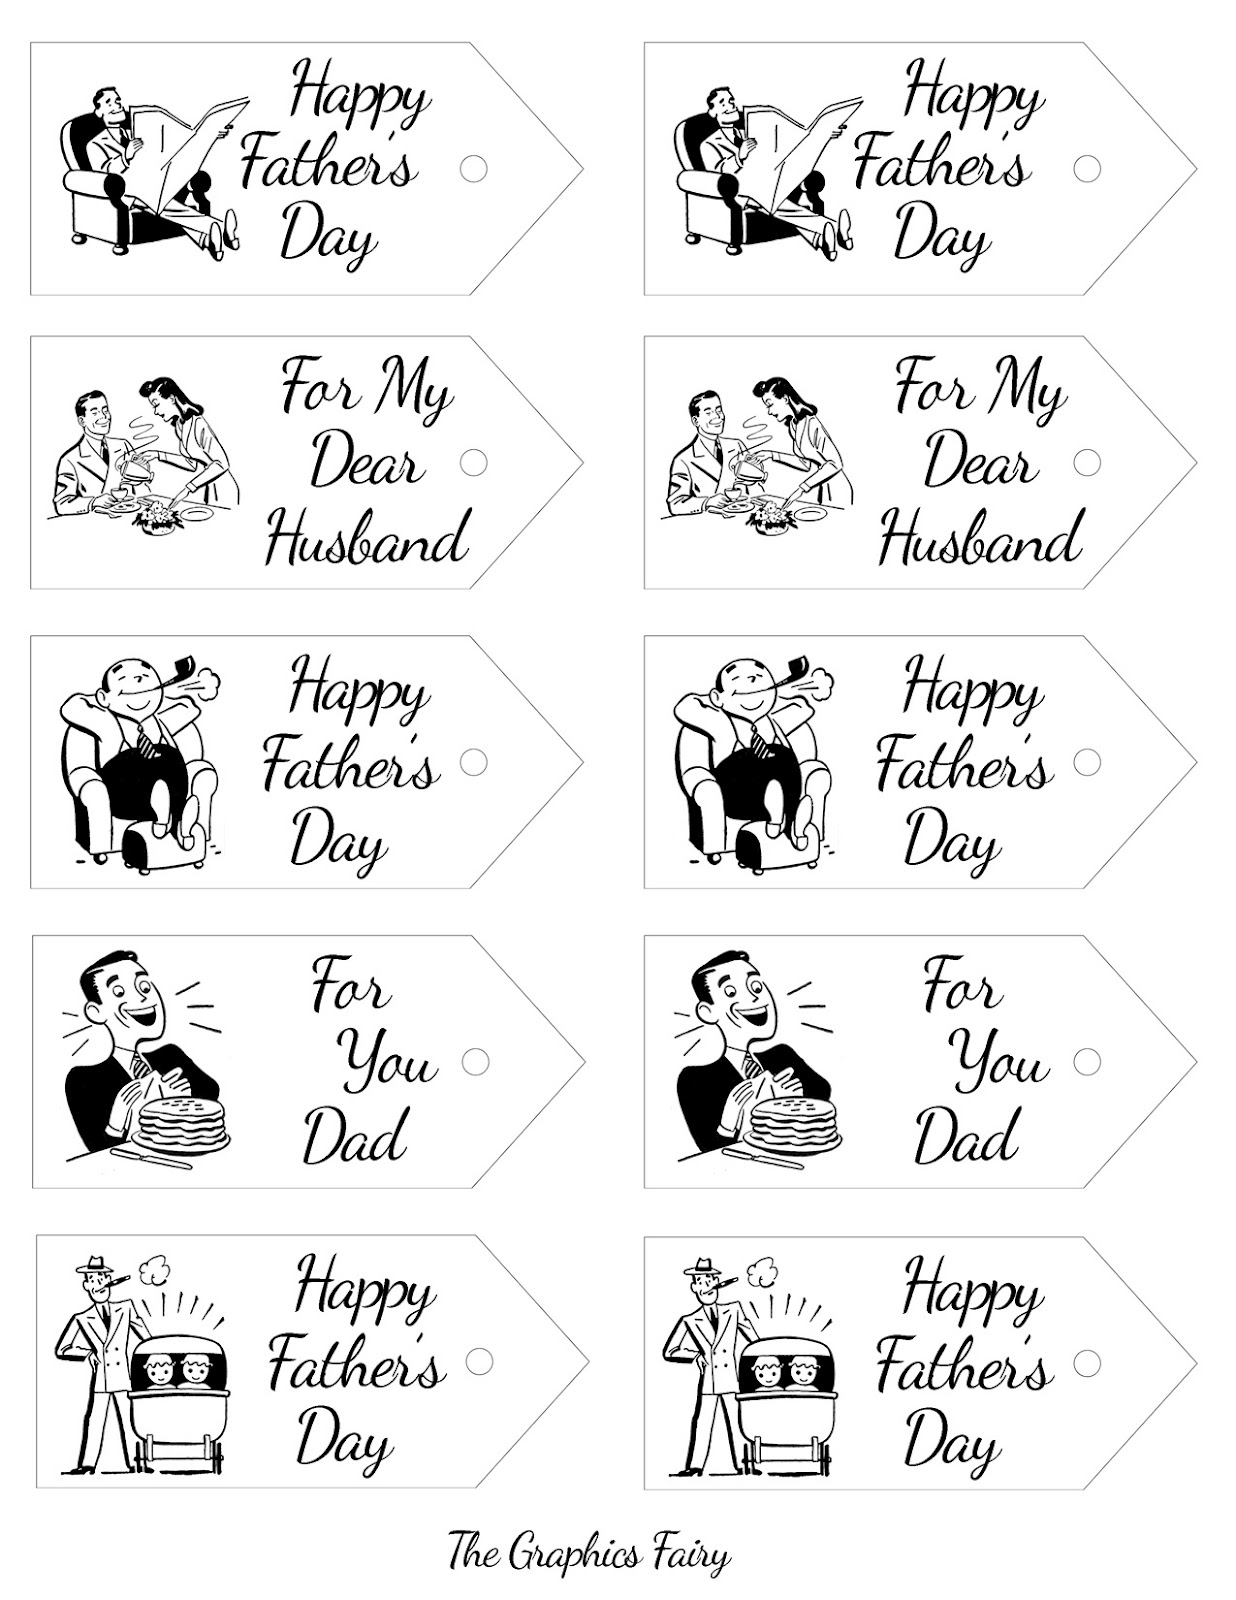 7 Images of Father's Day Printable Gift Tags